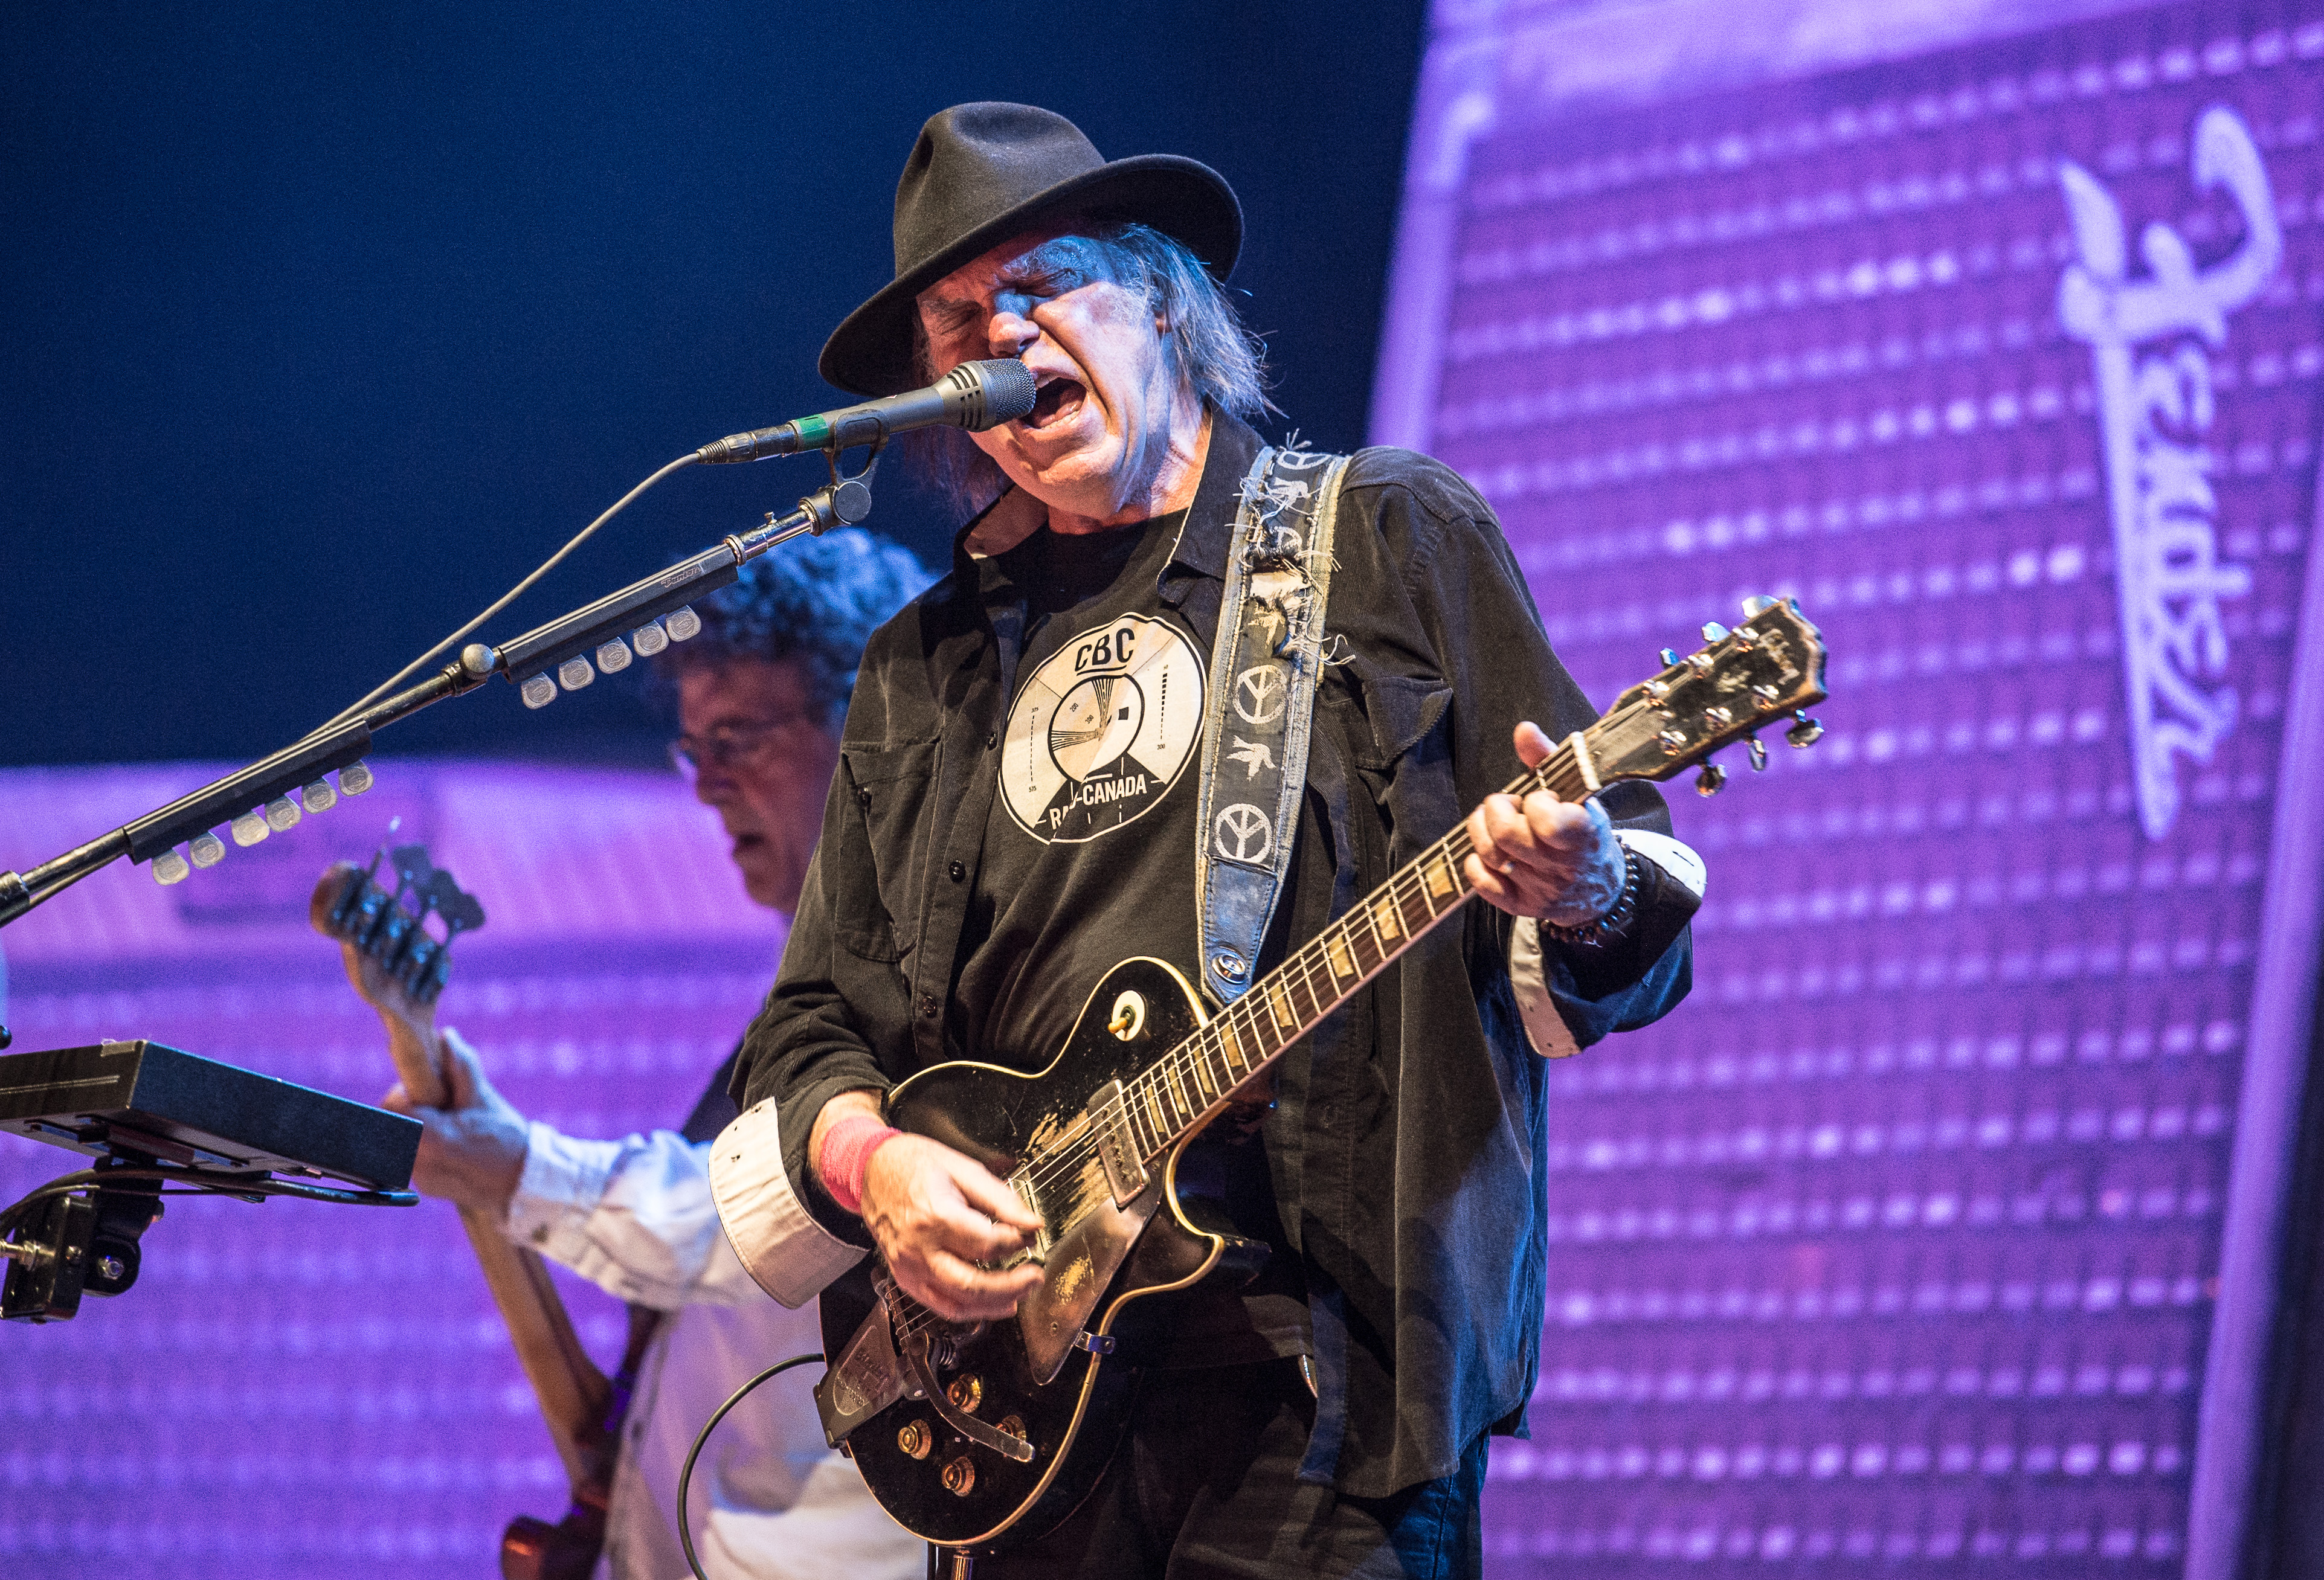 PARIS, FRANCE - JUNE 06: Neil Young performs at Palais Omnisports de Bercy on June 6, 2013 in Paris, France. (Photo by David